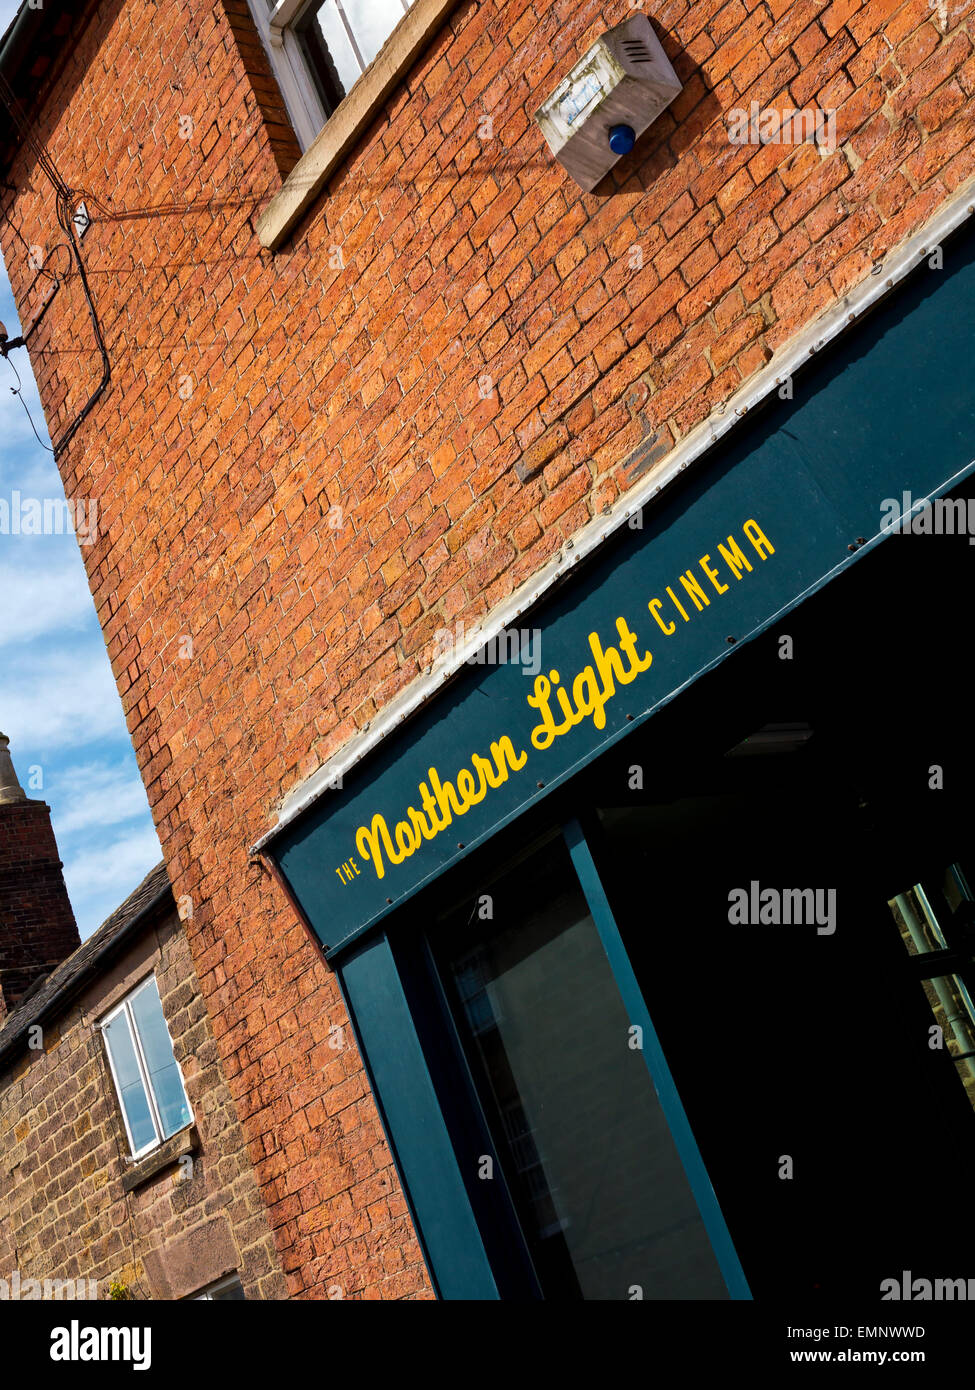 Exterior of the Northern Light Cinema a small independent cinema in Wirksworth in the Derbyshire Dales Peak District - Stock Image